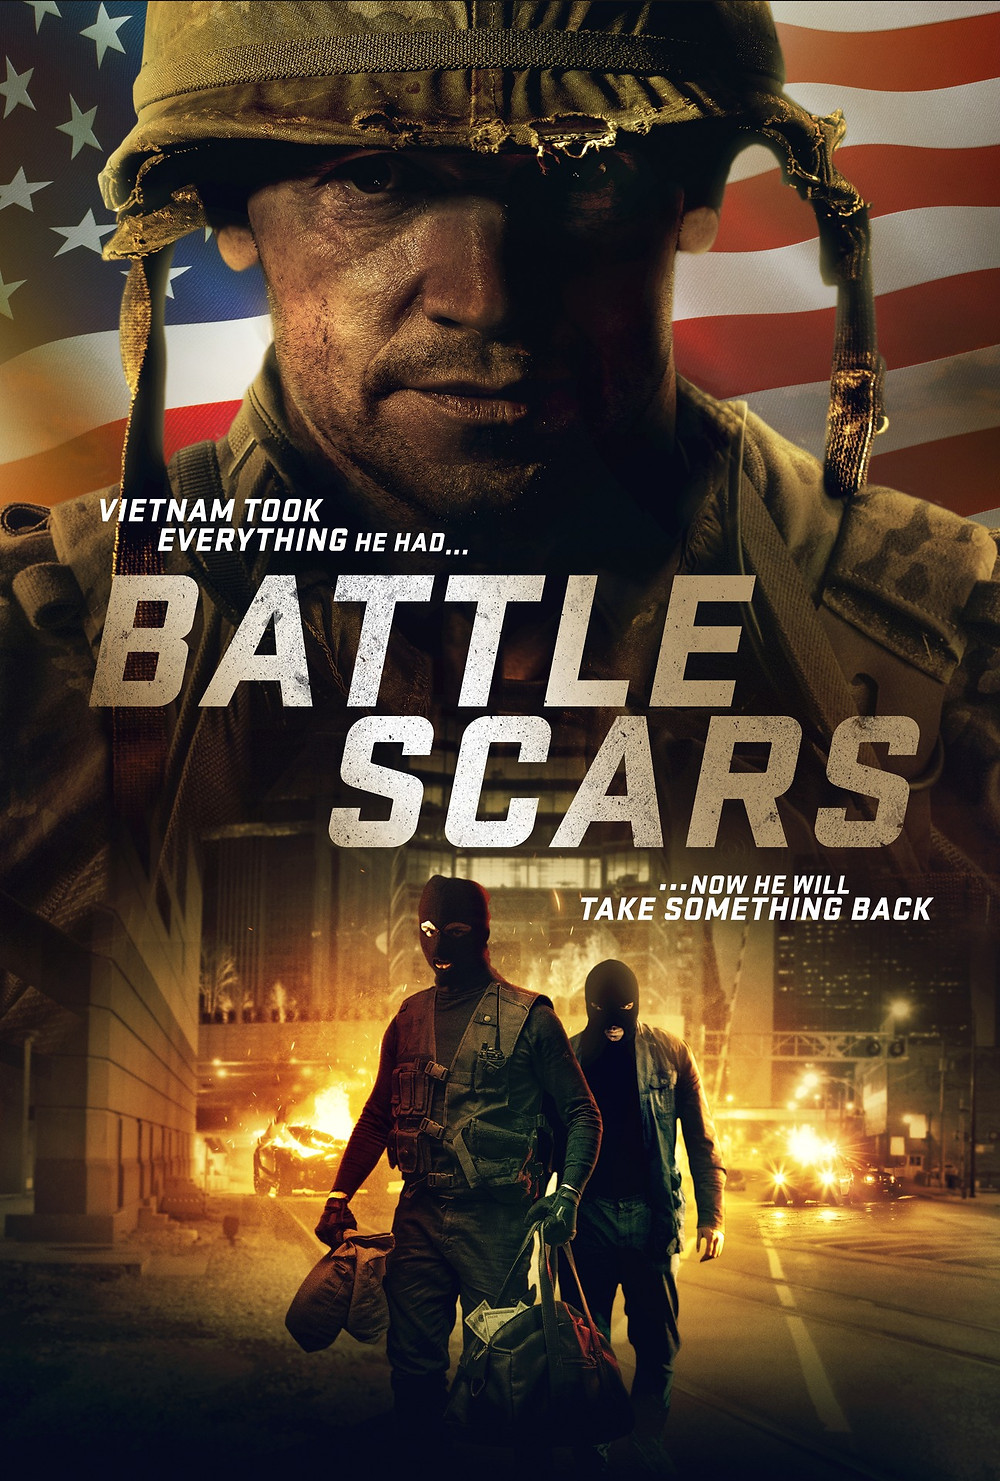 Poster for Battle Scars showing protagonist.